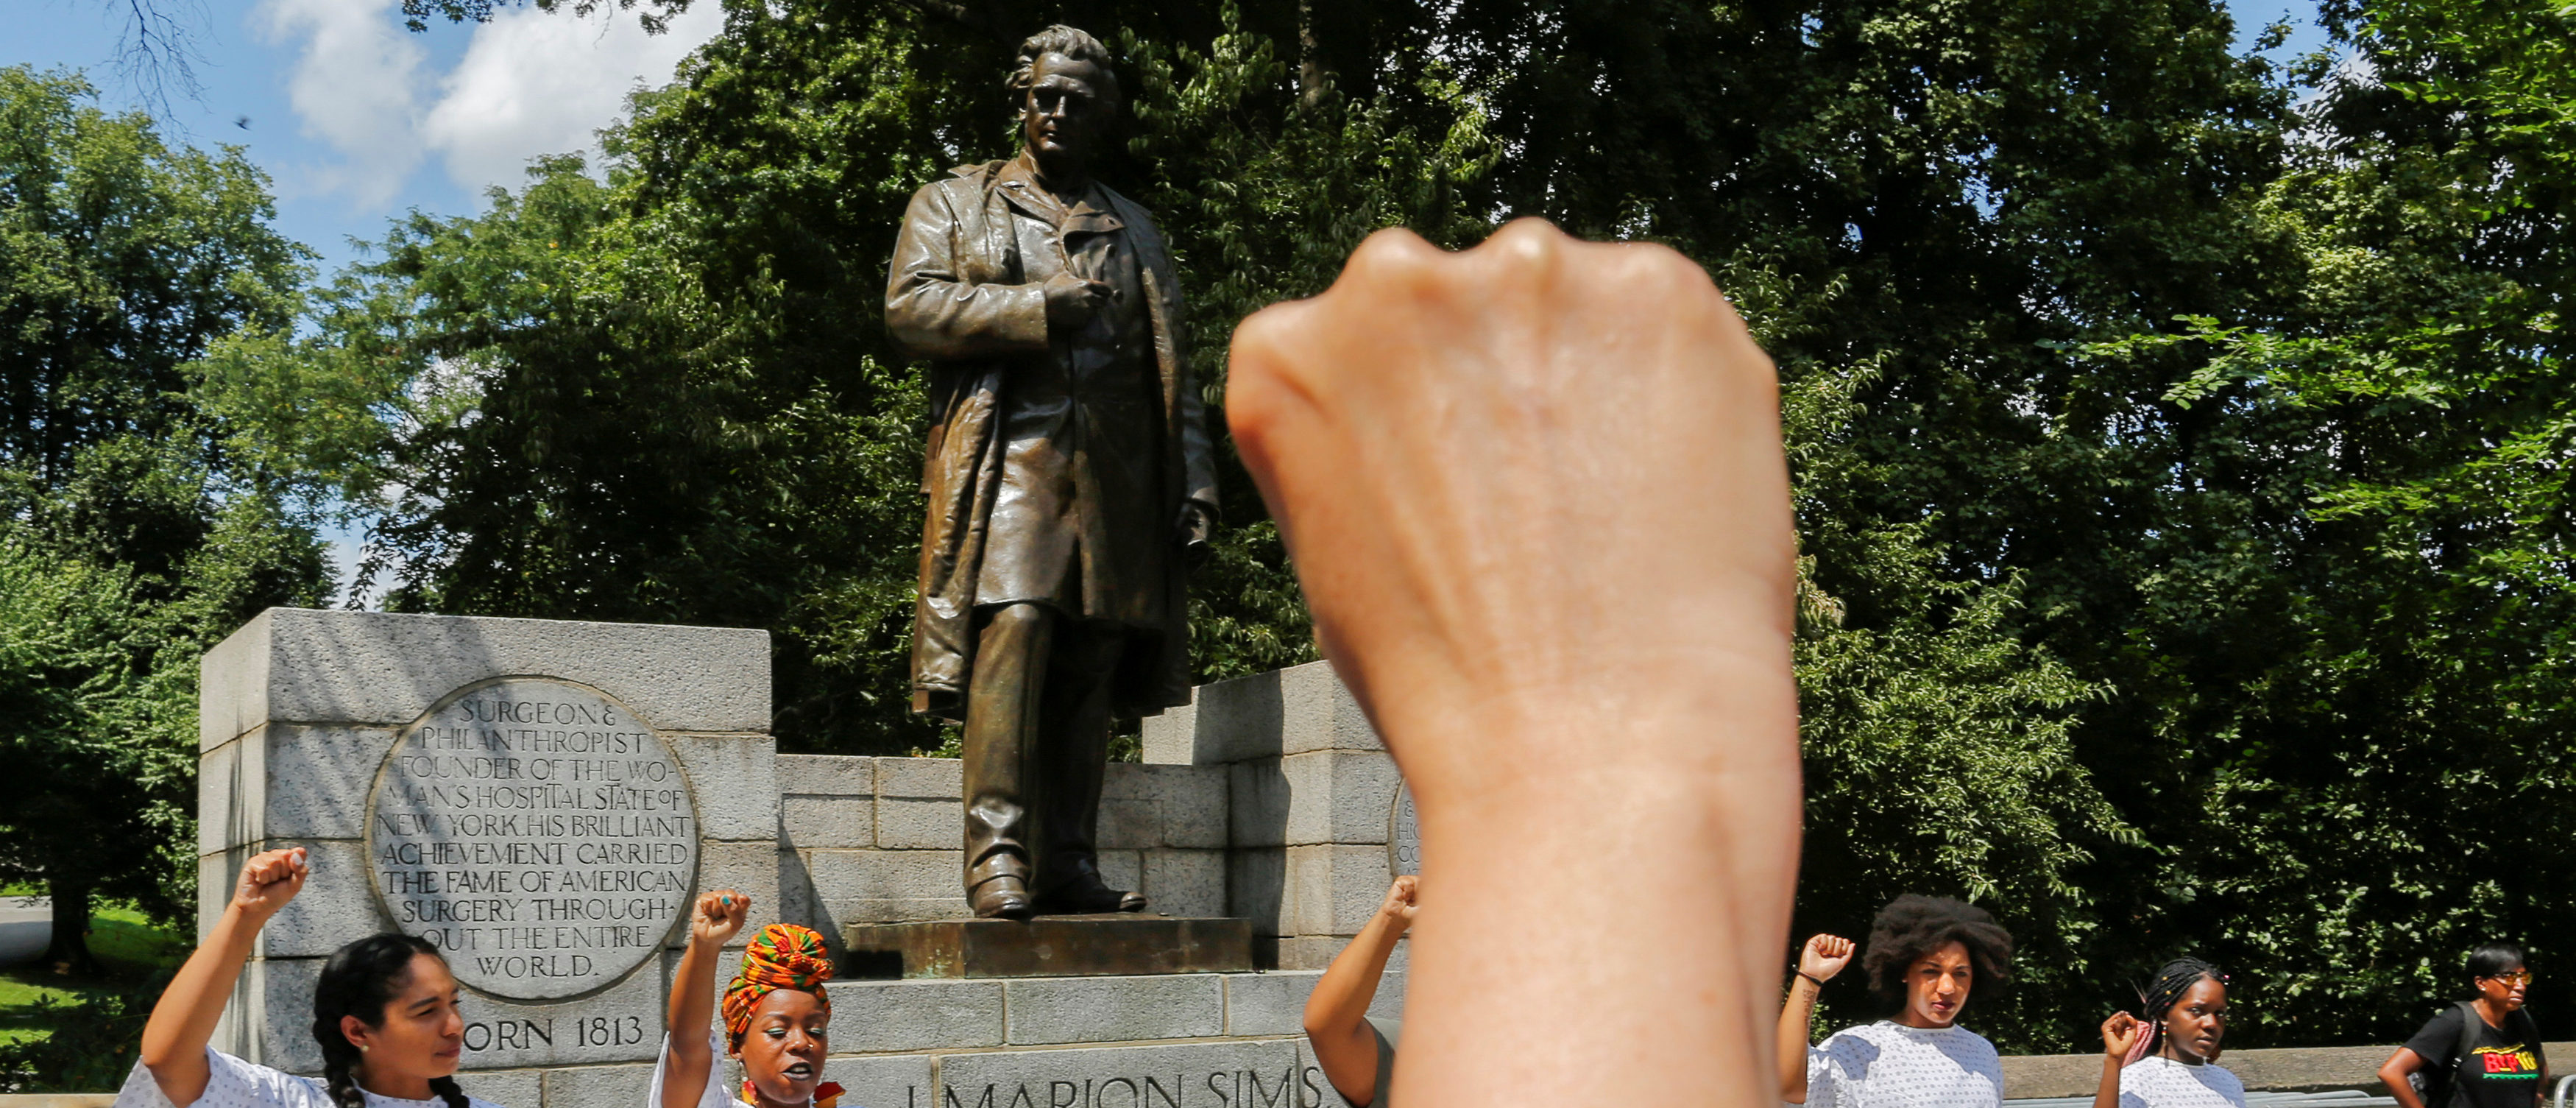 People take part in protest against white supremacy in front of J. Marion Sims statue at the upper east side in New York, August 19, 2017. REUTERS/Eduardo Munoz